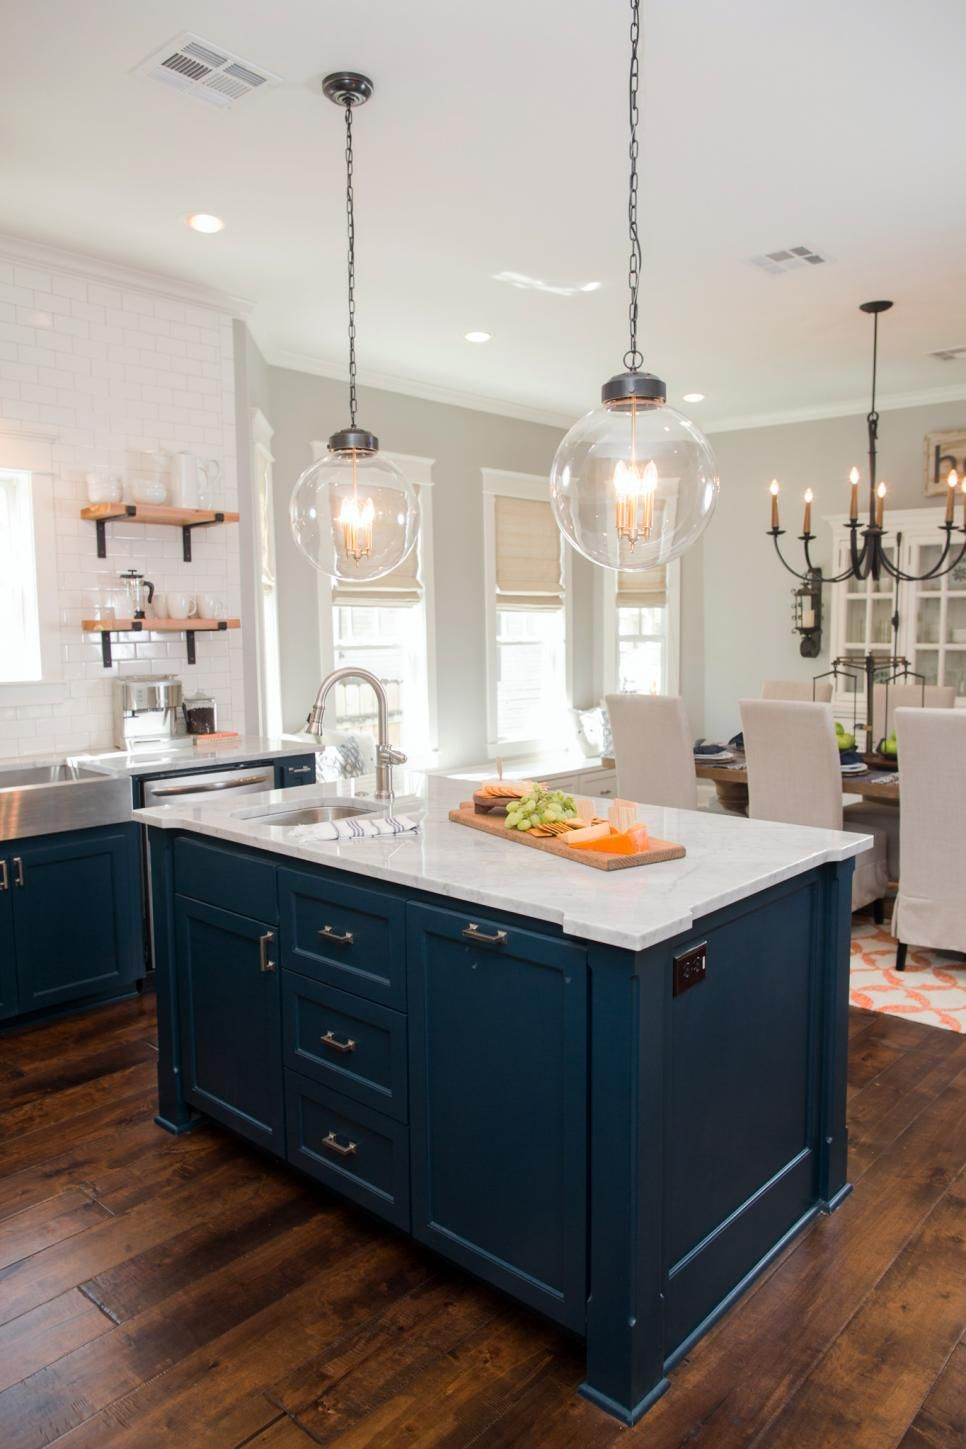 chip and joanna gaines undertake an ambitious makeover on a century old home for a newlywed on kitchen layout ideas with island joanna gaines id=44890